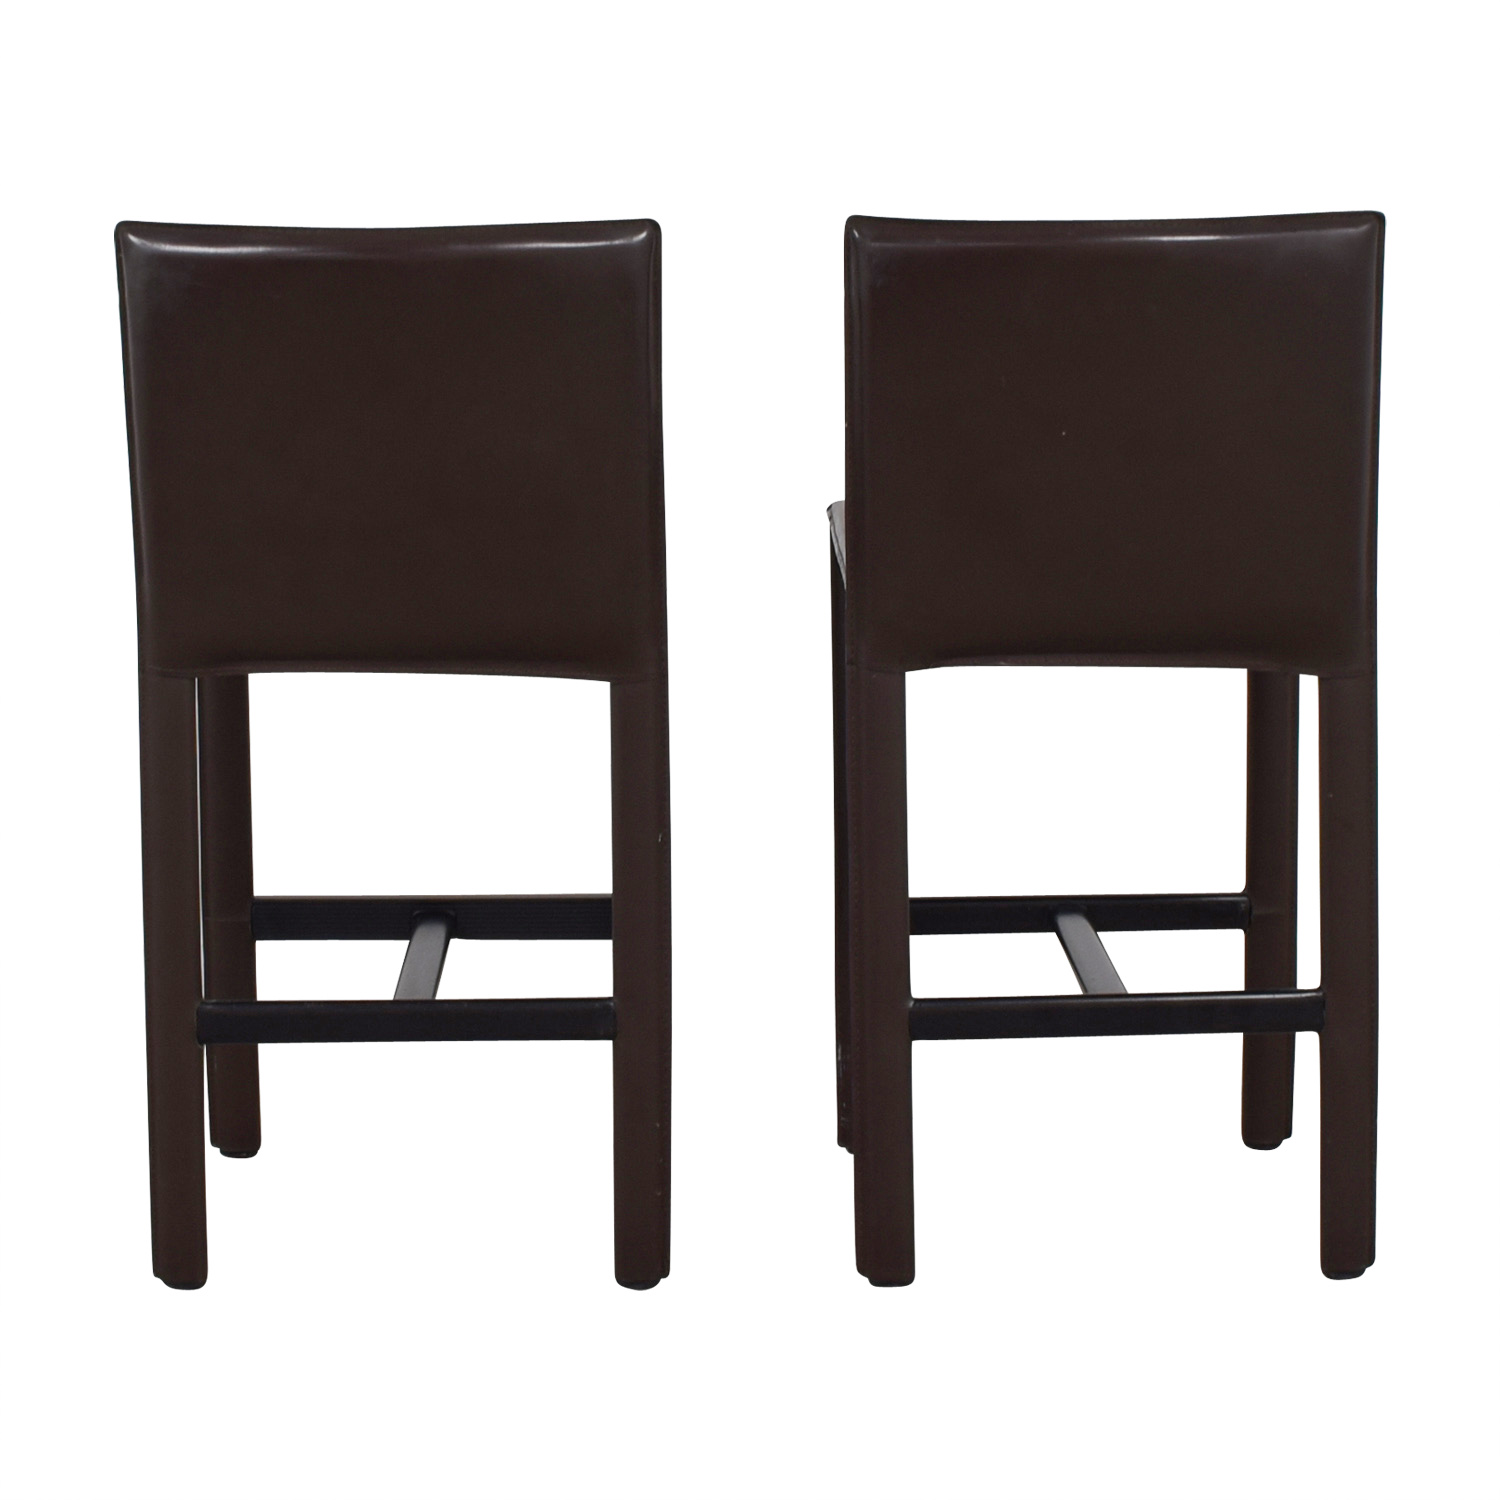 Room & Board Room & Board Brown Leather Bar Stools second hand